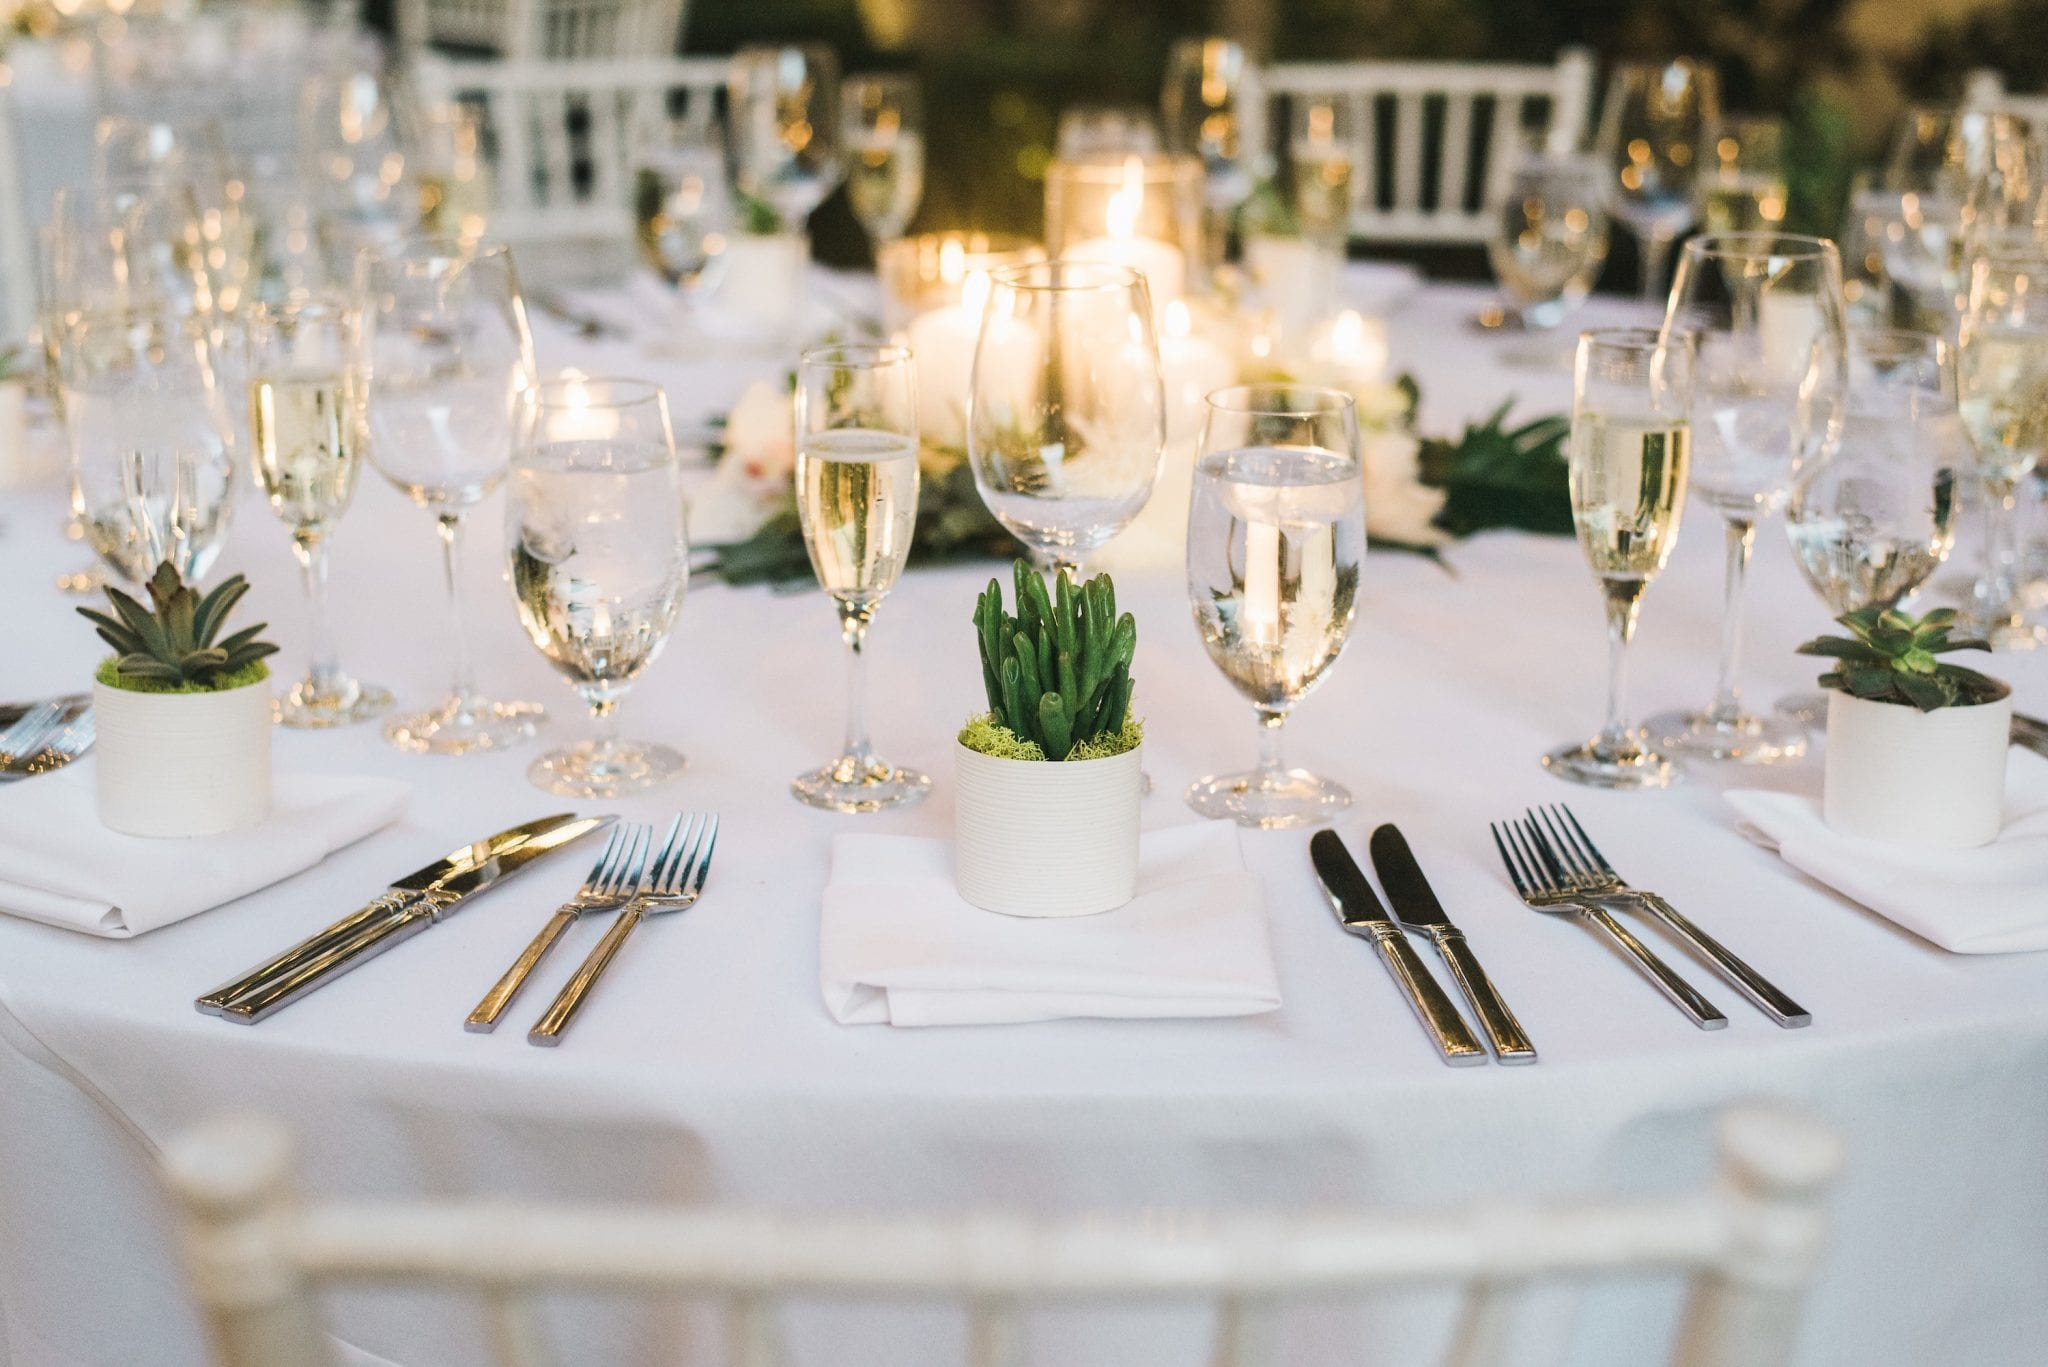 Table with place settings and centerpiece